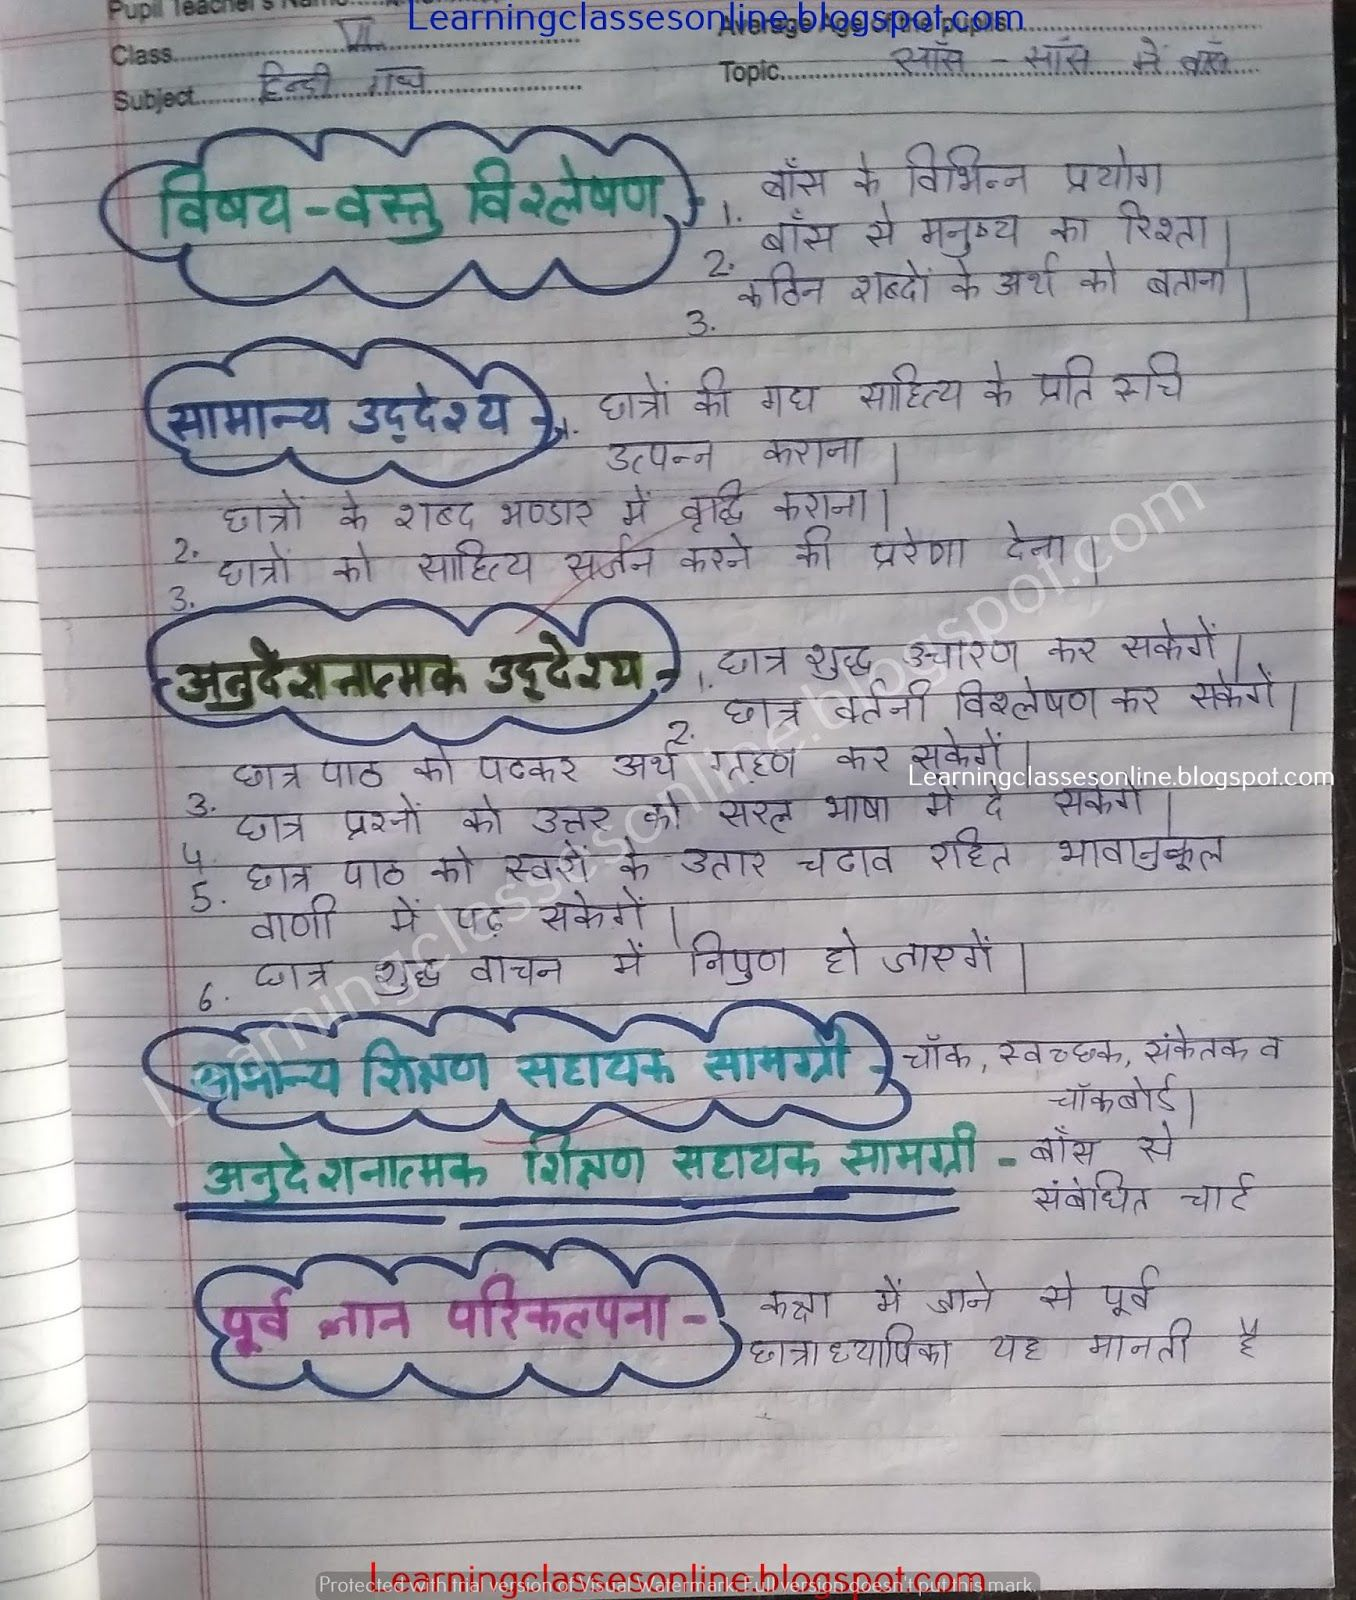 Real Teaching Mega Lesson Plan In Hindi For Class 6 On Saans Saans Mein Baas Vasant Bhag 1 Lesson Plan In Hindi Teacher Lesson Plans Science Lesson Plans [ 1600 x 1356 Pixel ]